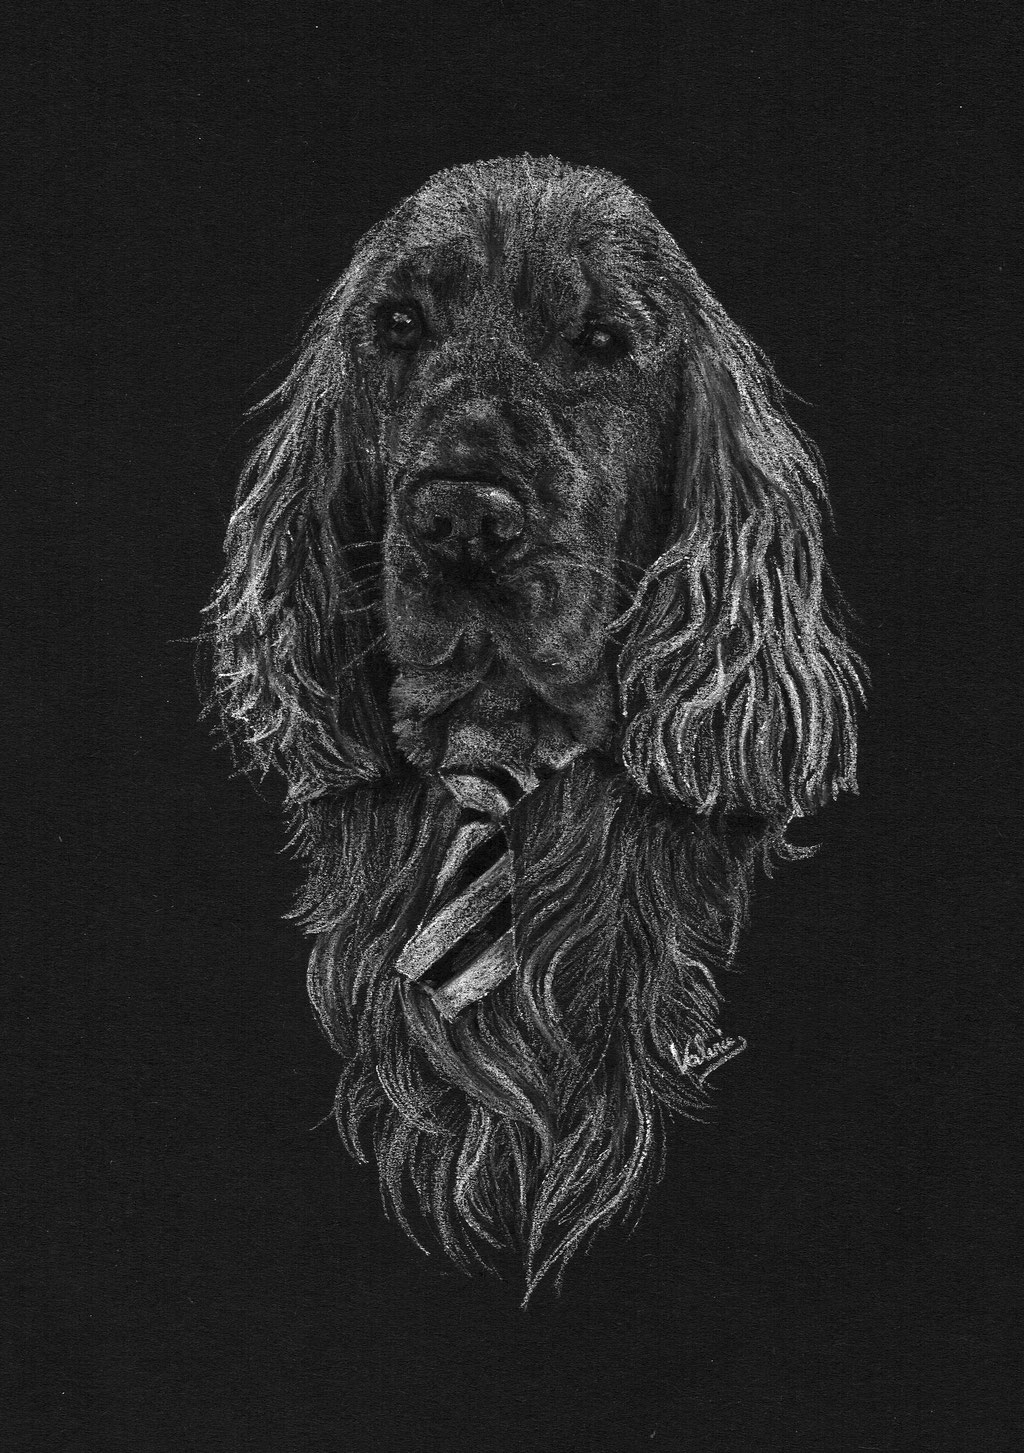 Dierenportret cocker spaniel wearing a tie: Wit potlood op zwart papier (2016)